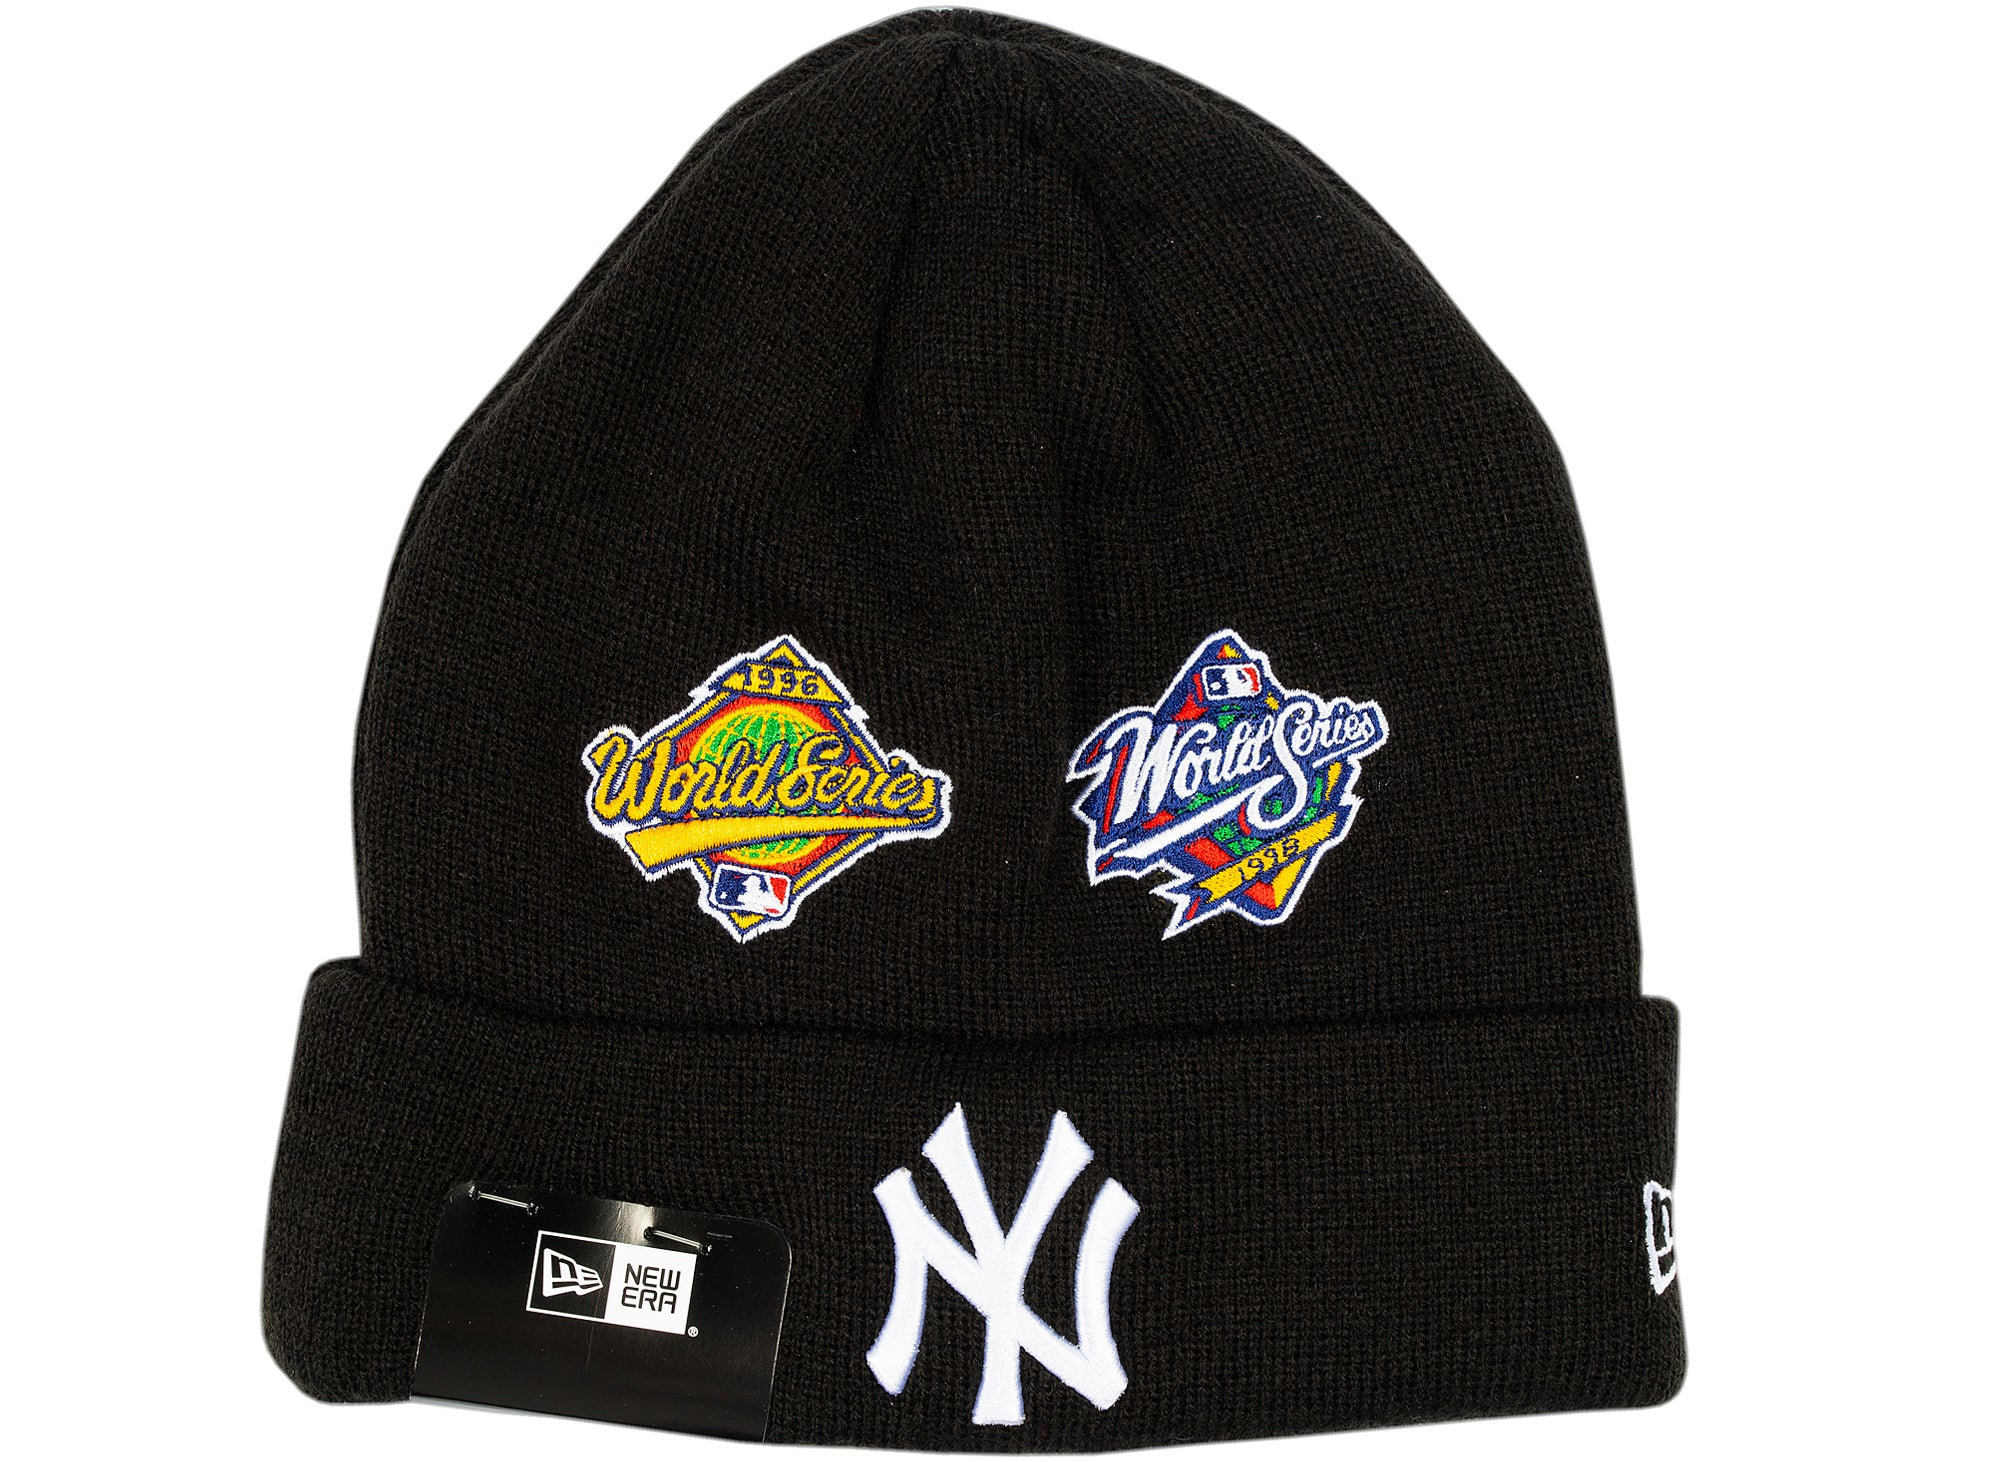 New Era Yankees Knit Cuff Beanie xld